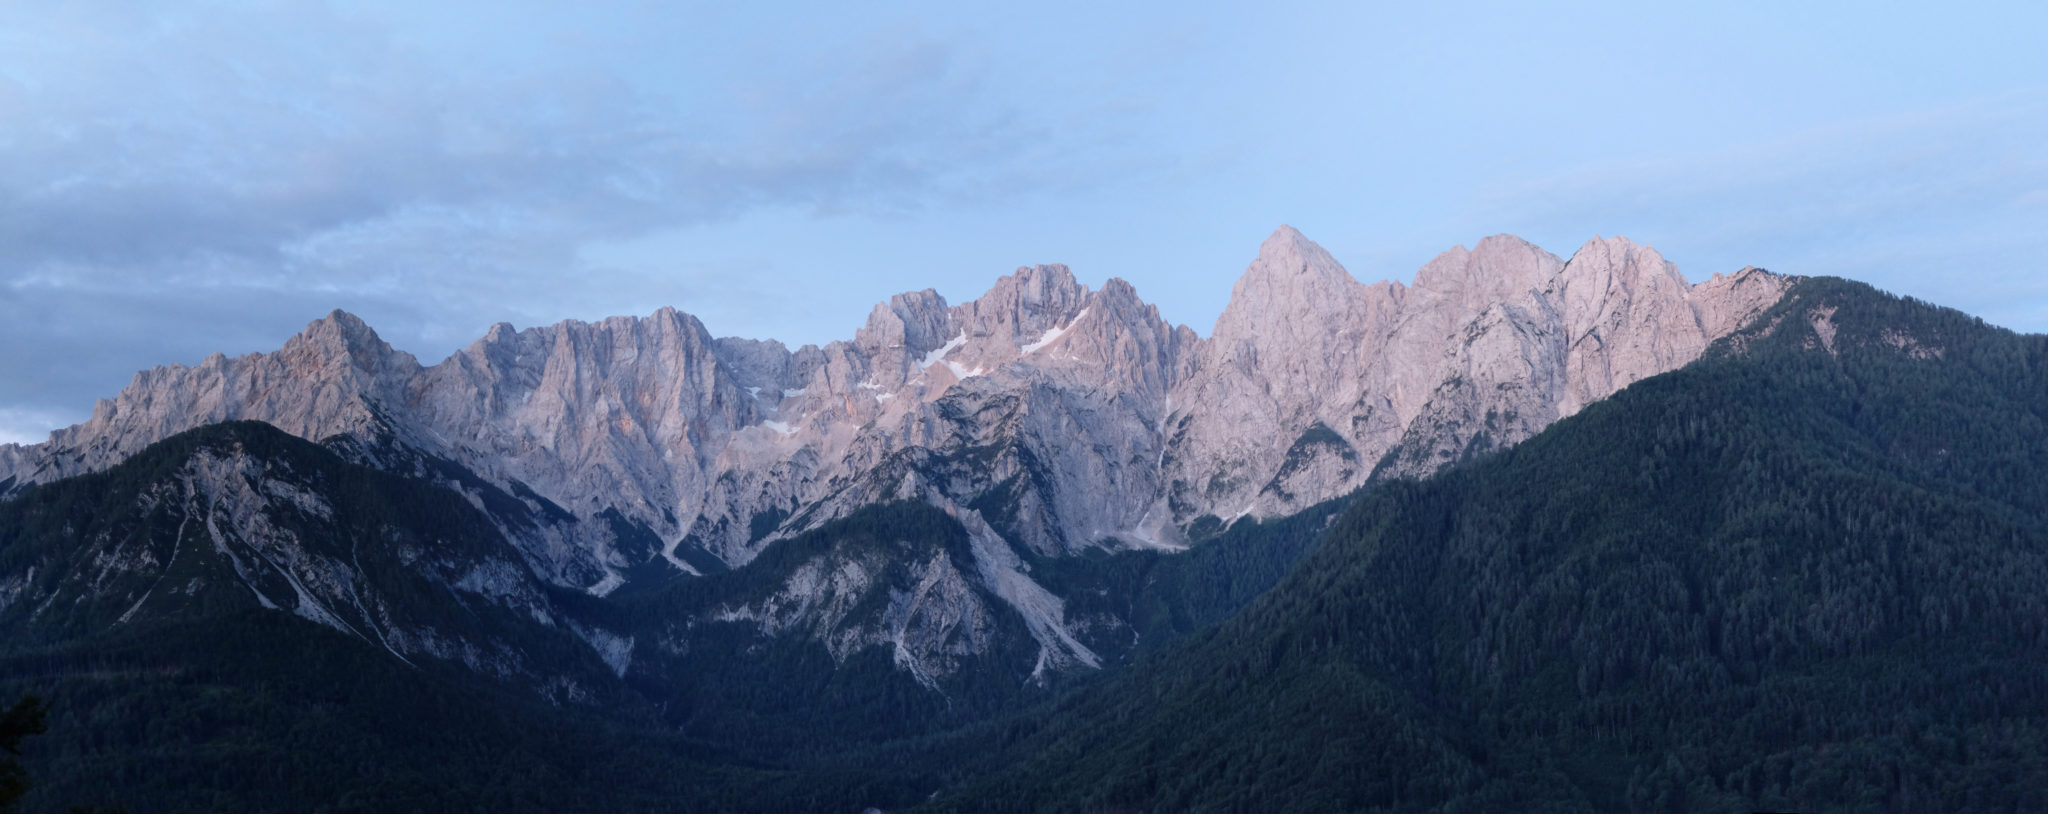 Martuljek Mountain Range of the Julian Alps, Kranjska Gora